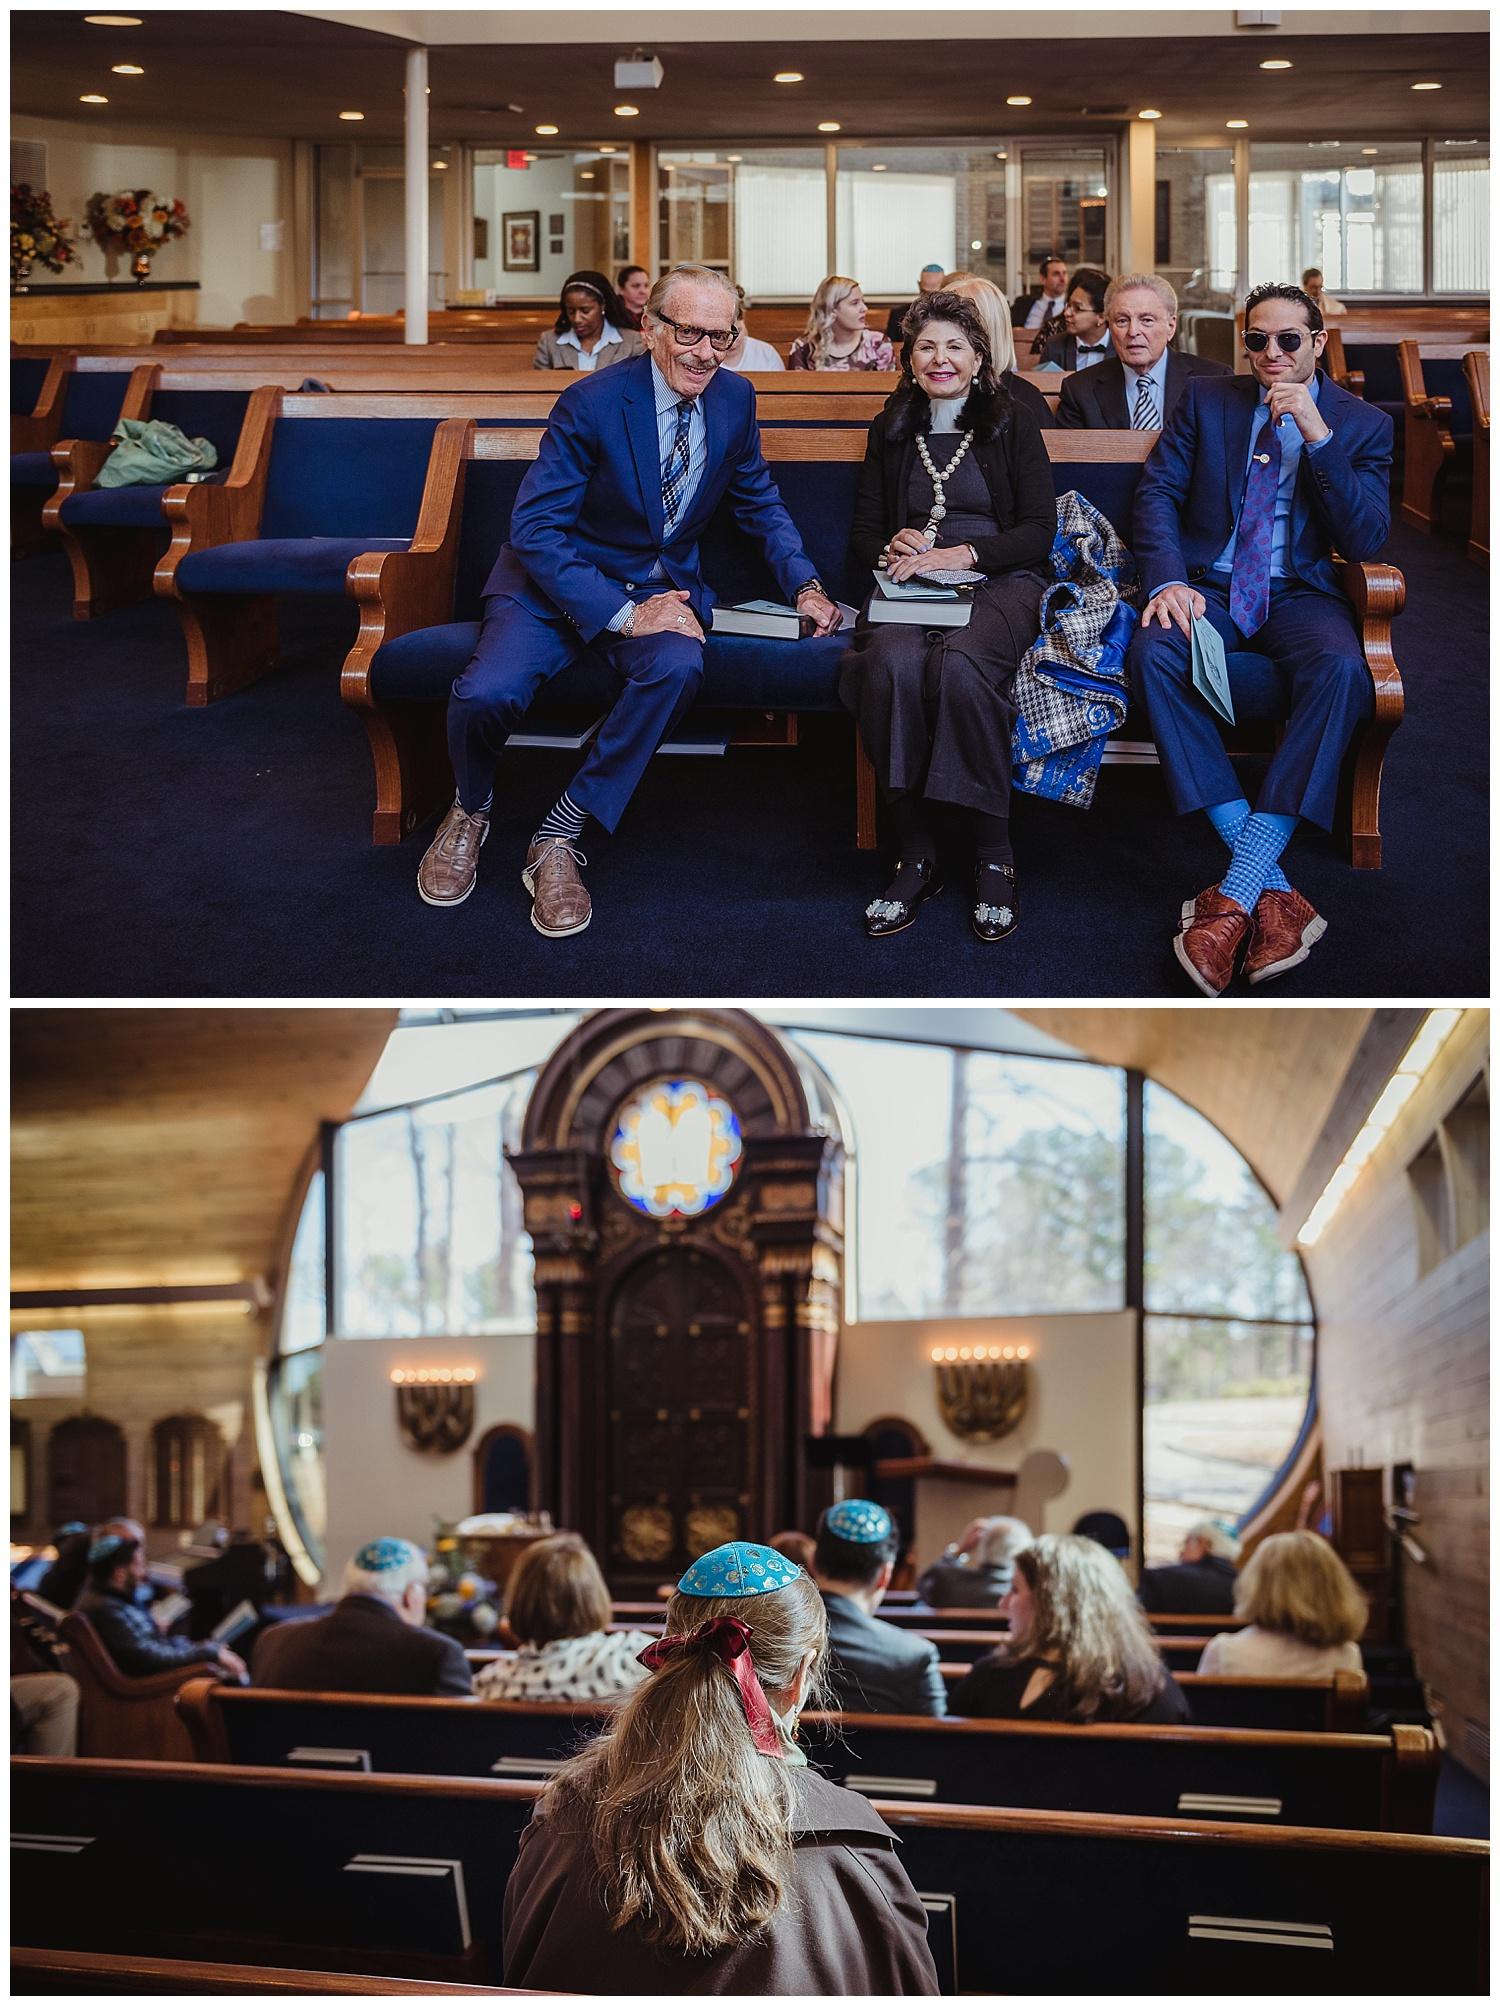 Family waiting in the sanctuary before the ceremony of Andrew becoming bar mitzvah at Temple Beth Or in Raleigh, NC.